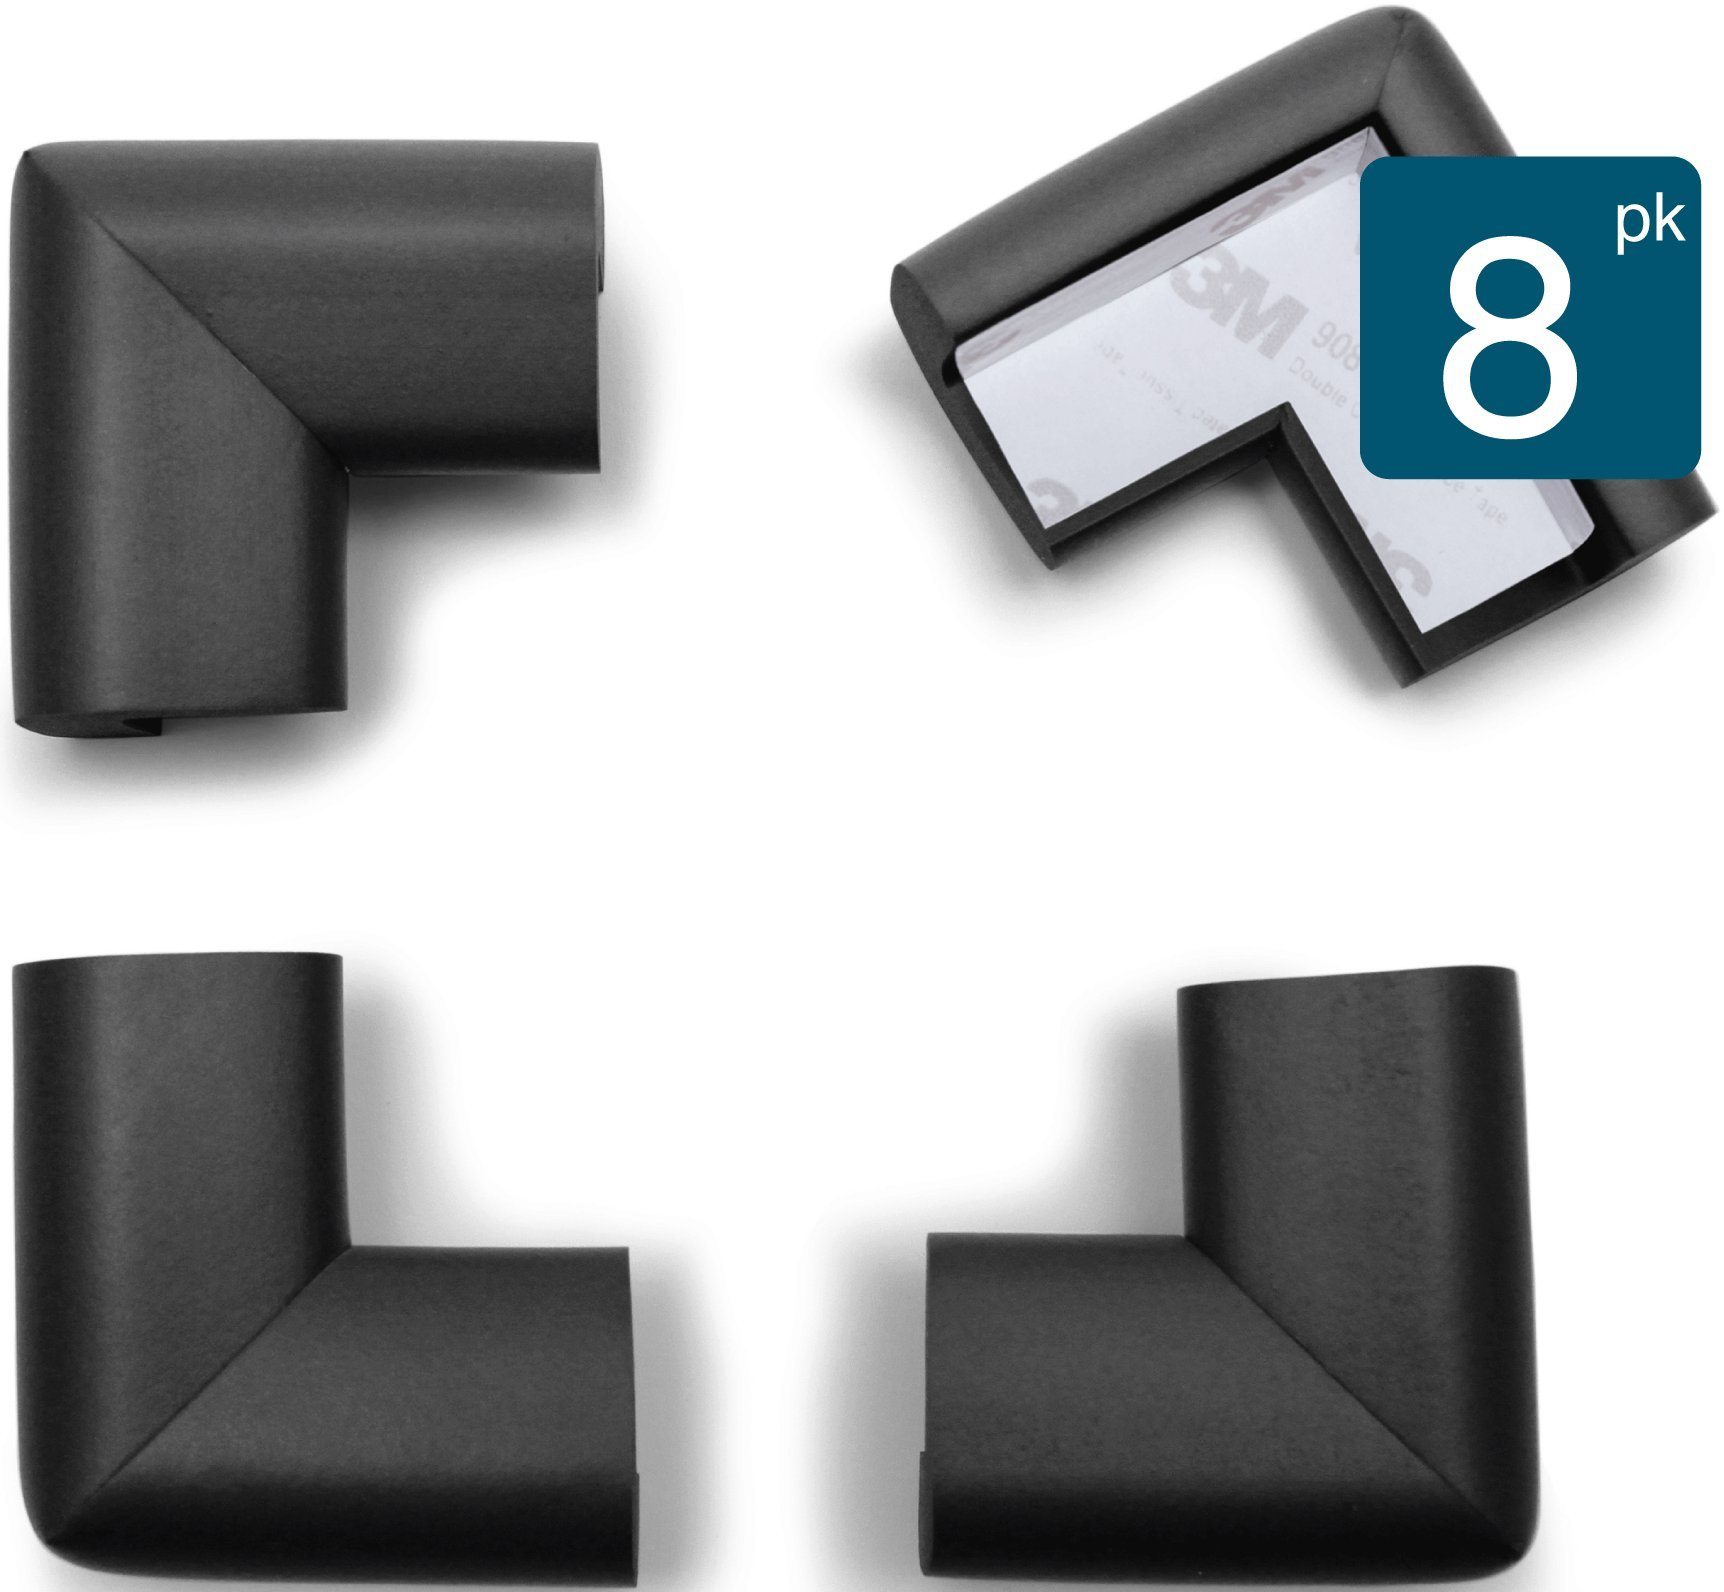 Roving Cove | Baby Proofing Table Corner Guards | Caring Baby Corners | Safe Corner Cushion | Child Safety; Rubber Furniture Bumper Protector | Pre-Taped | 8-Piece Onyx (black)